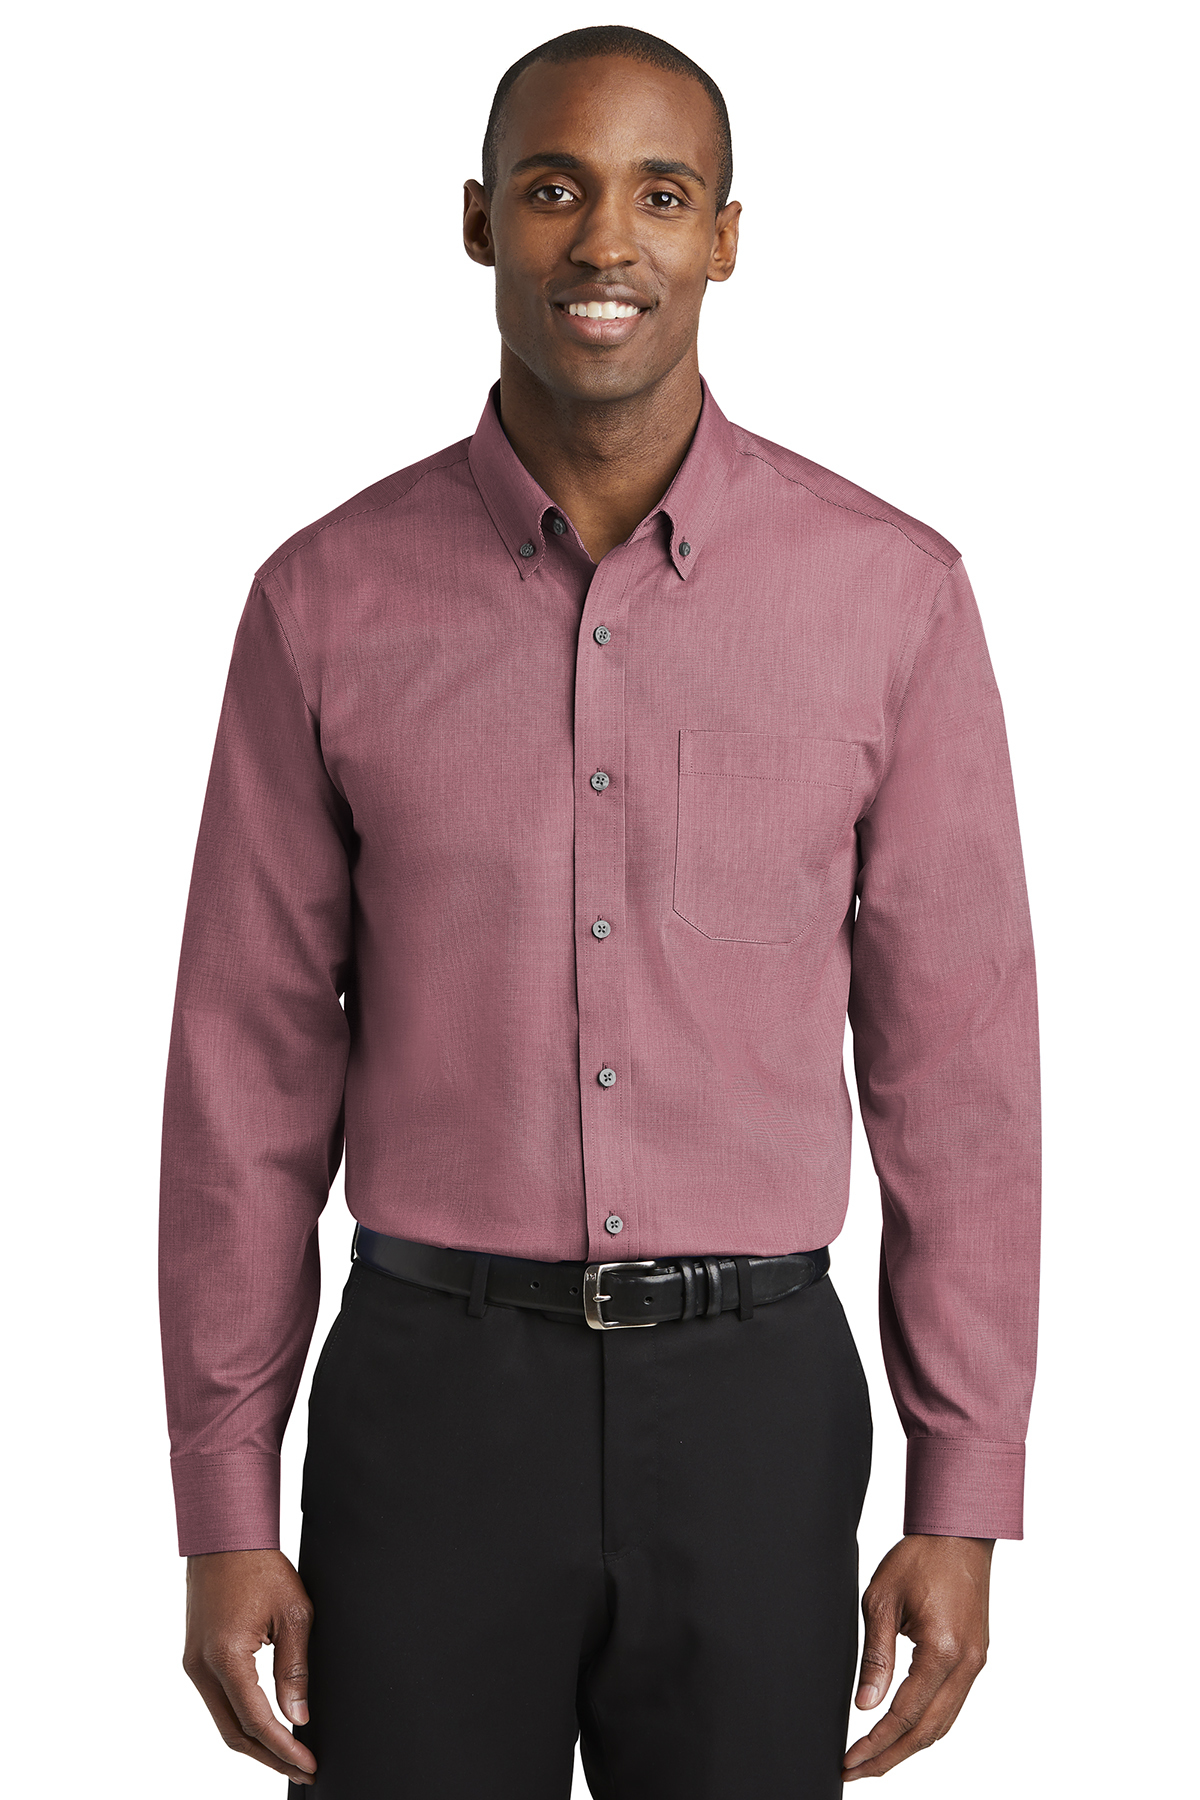 Red House RH370 - Men's Nailhead Non-Iron Shirt